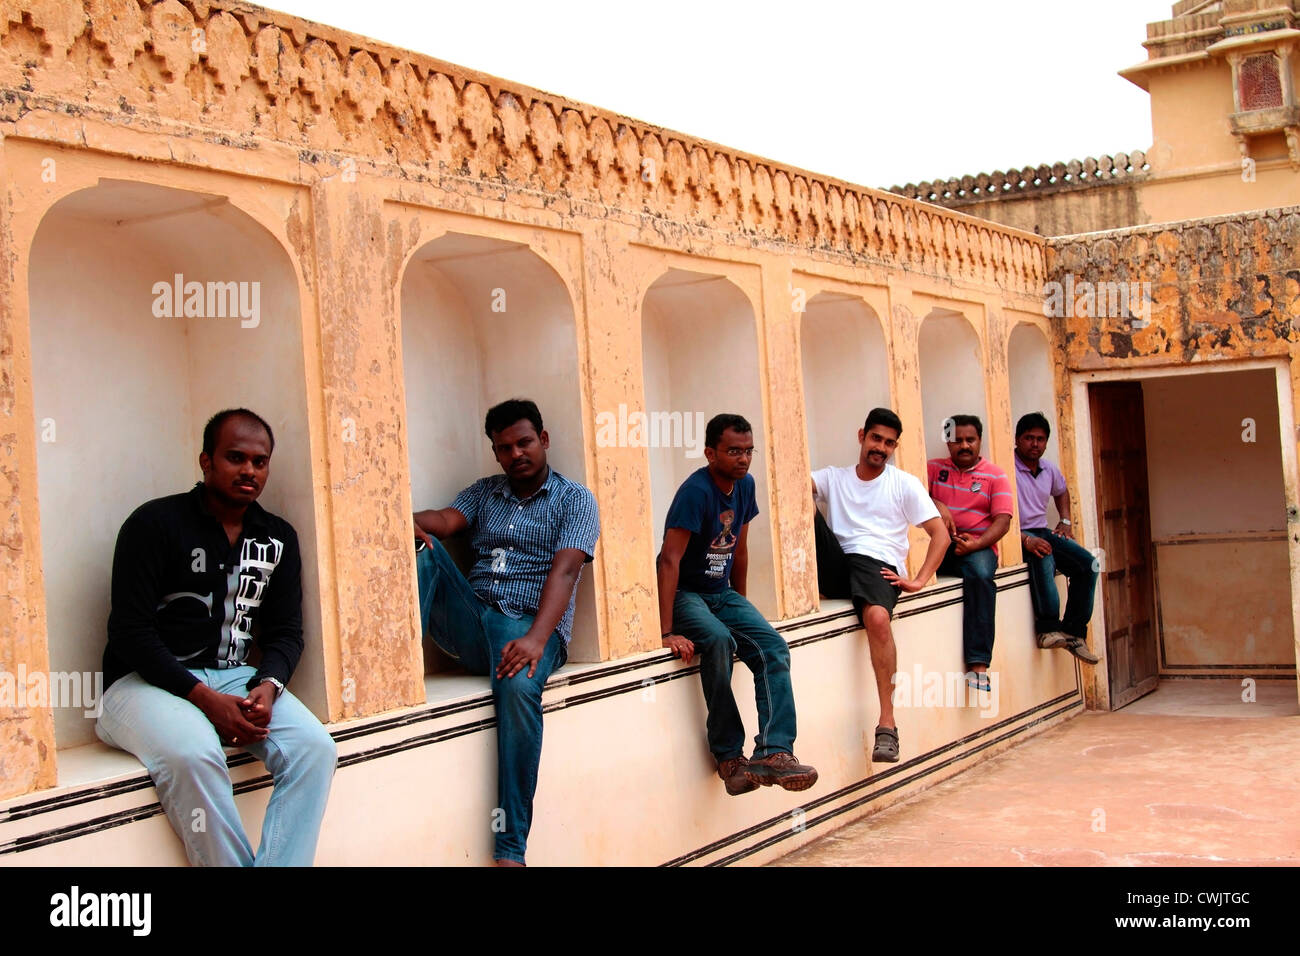 Amer fort,Models,tourist,Peoples,young,Setting on the window,smiling,Amber palace,Jaipur fort,India - Stock Image